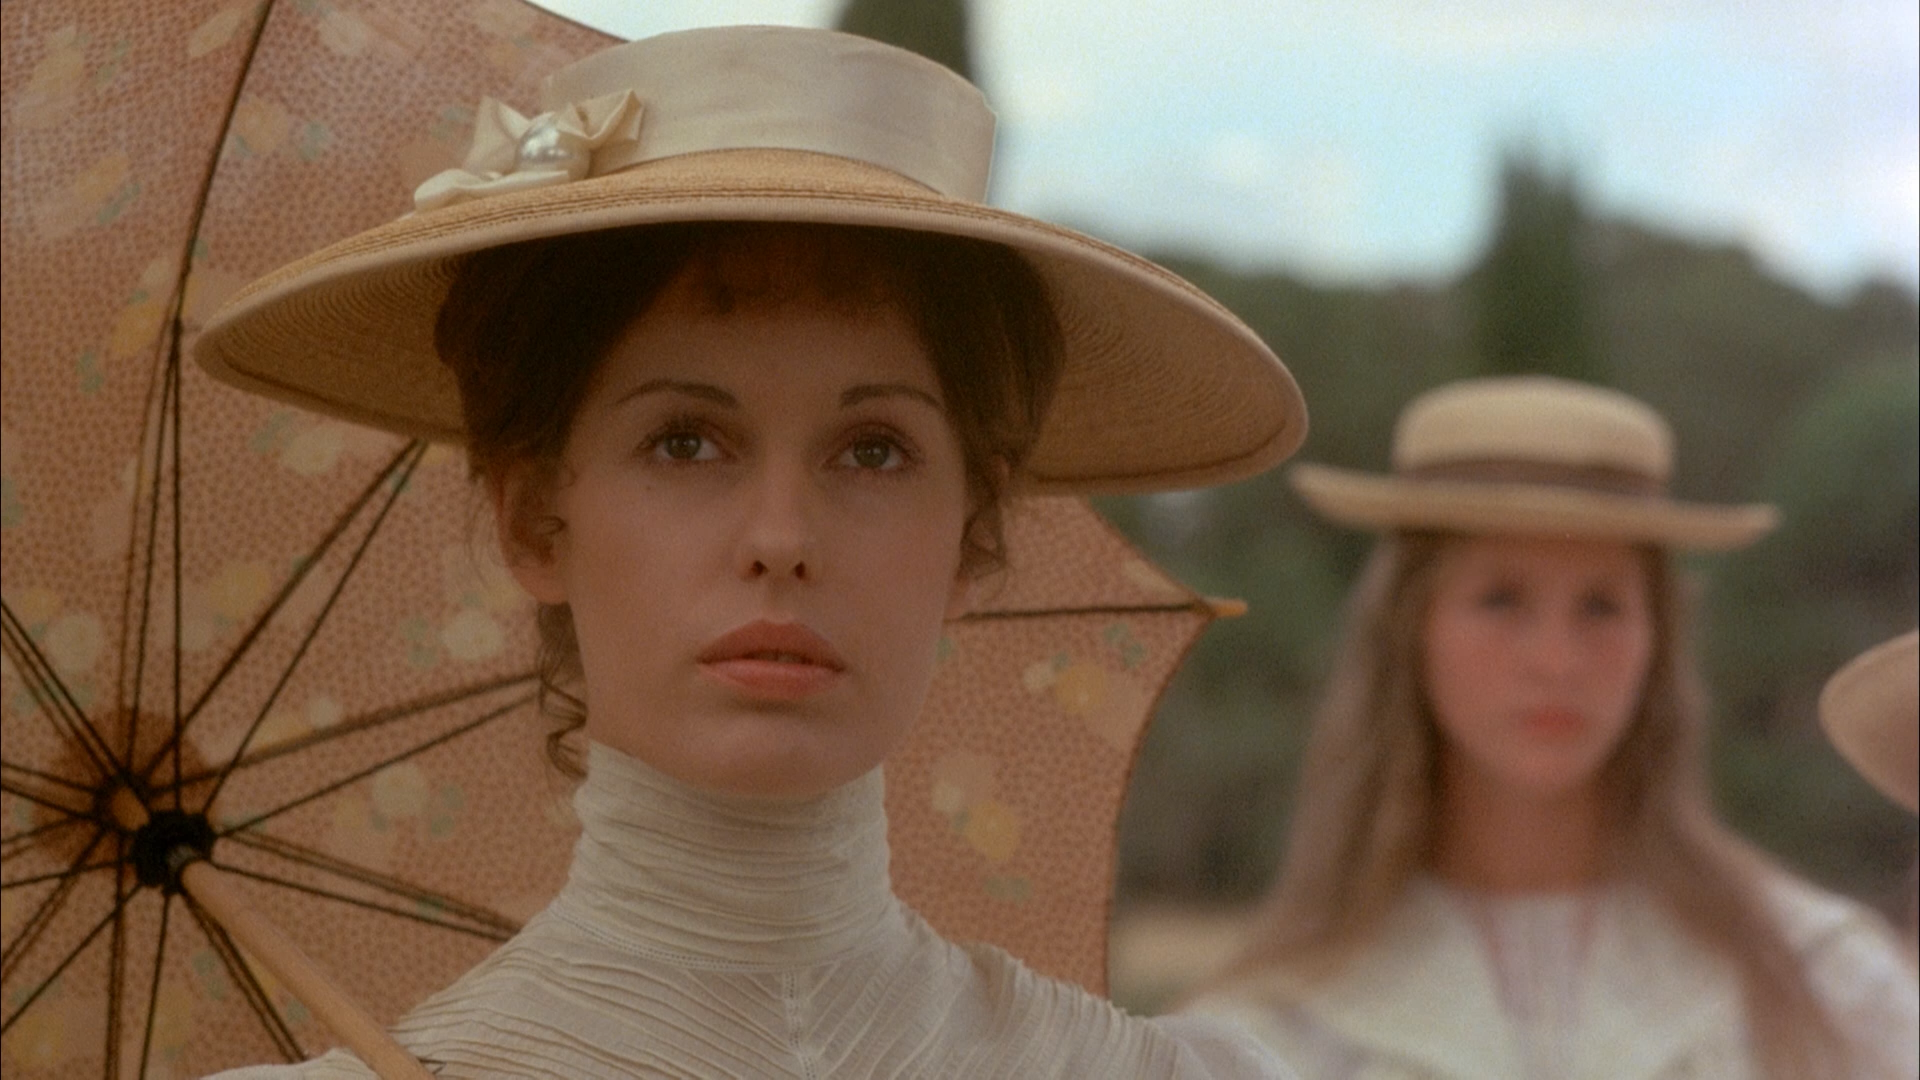 About the Movie Picnic at Hanging Rock   Picnic at hanging rock, Edwardian fashion, Peter weir